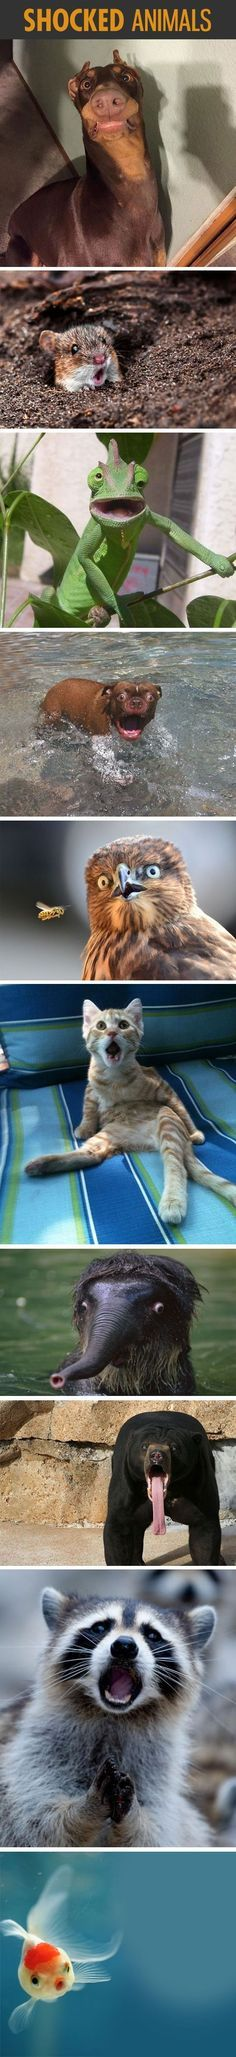 Shocked Animals funny cute animals dogs cat cats adorable animal kittens pets lol kitten humor wild animals funny animals